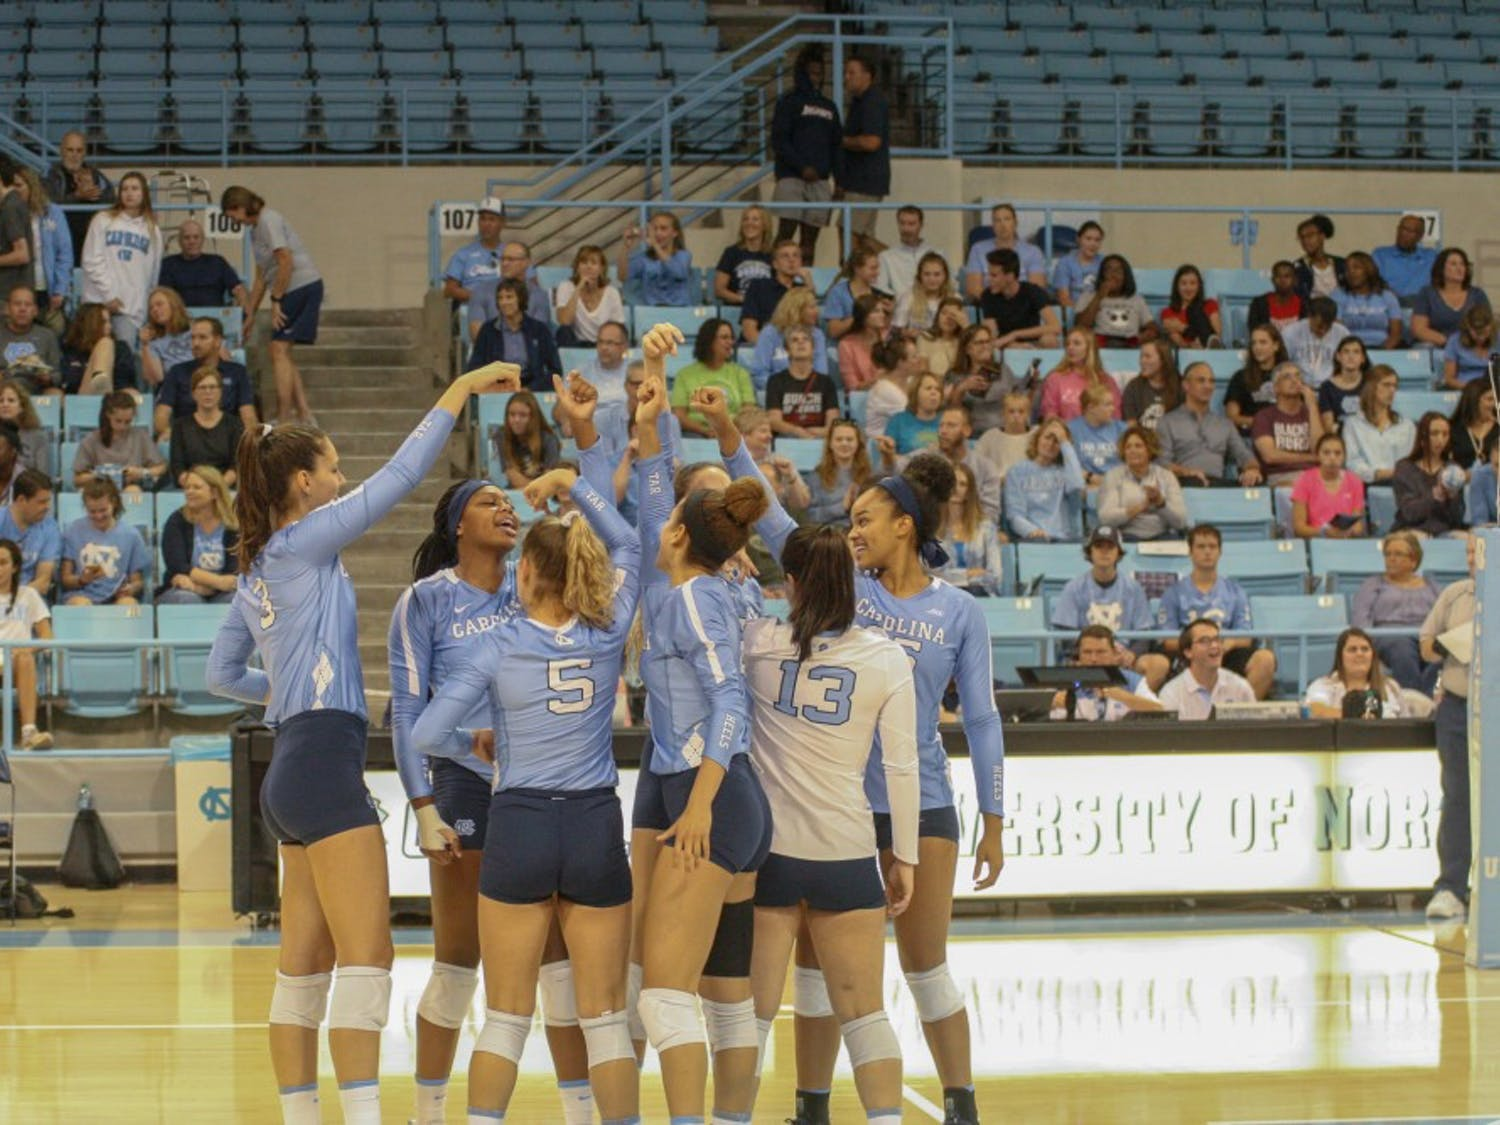 The UNC volleyball team prepares to take on Virginia Tech on Sunday, Oct. 6, 2019 at Carmichael Arena.